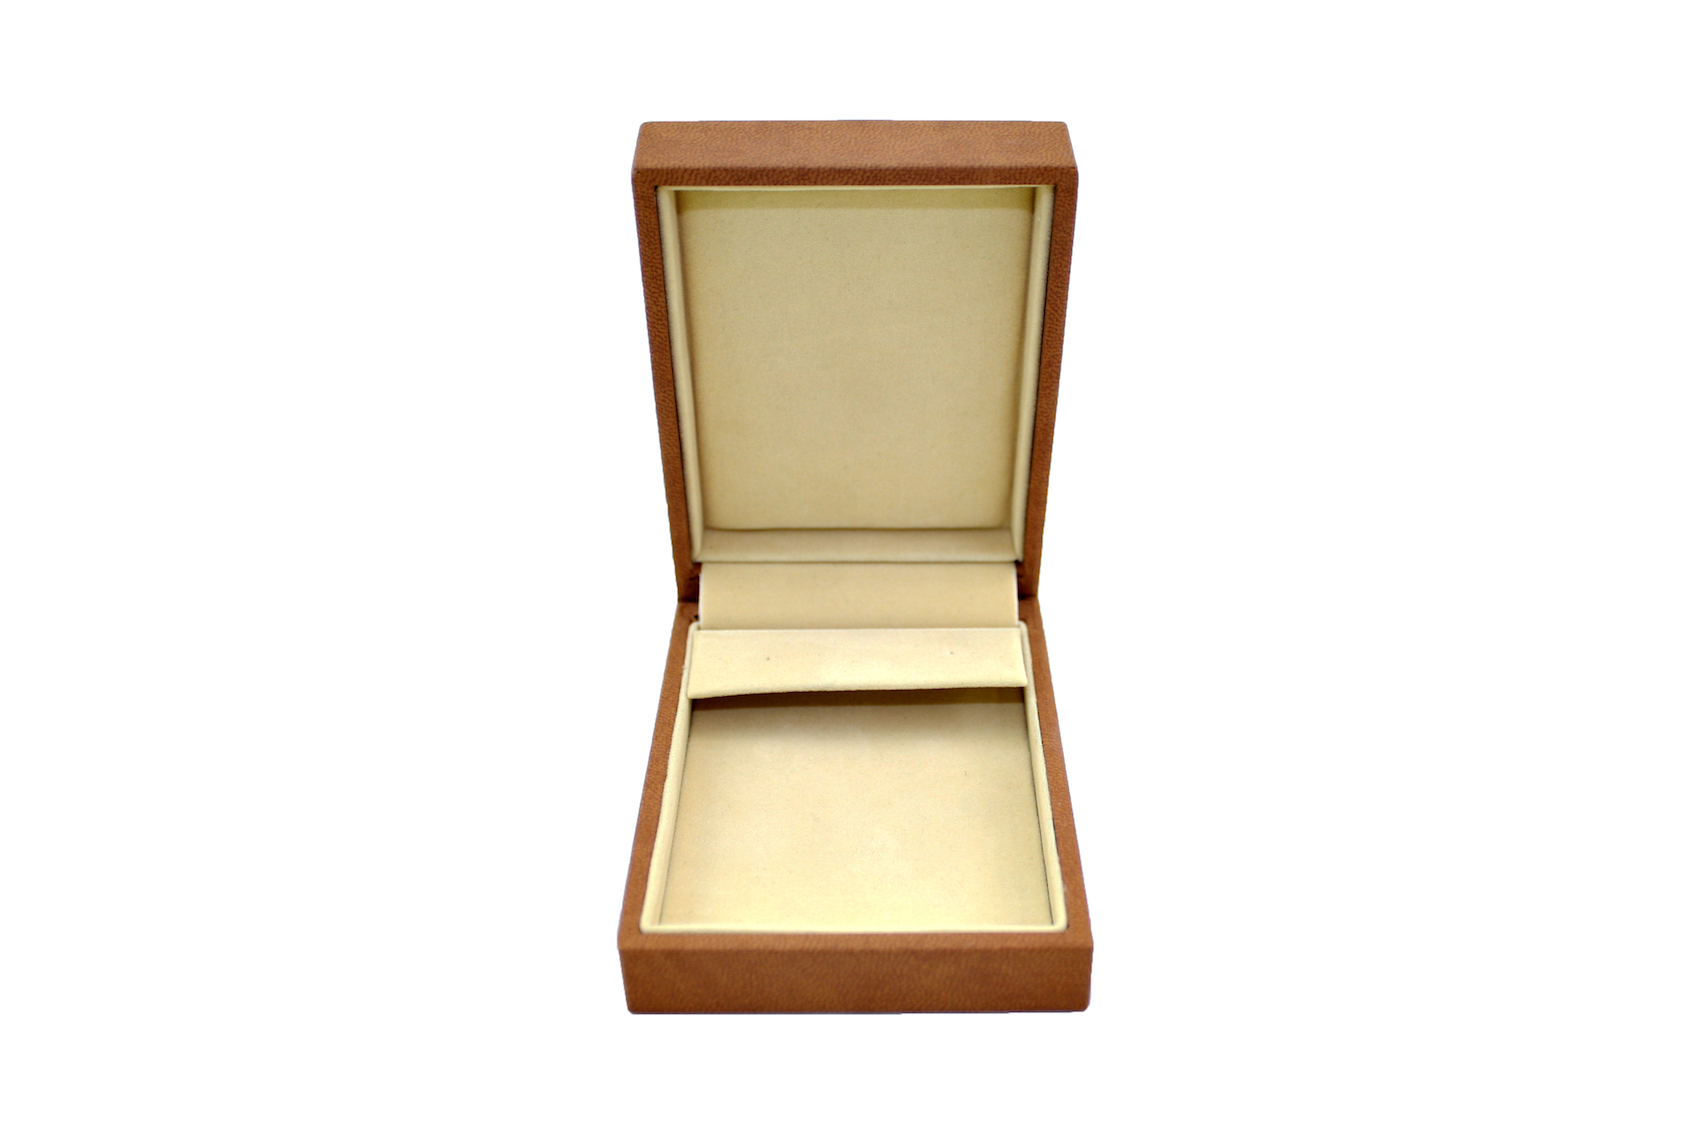 Brown Suede Pendant box with Huggy Earring Insert